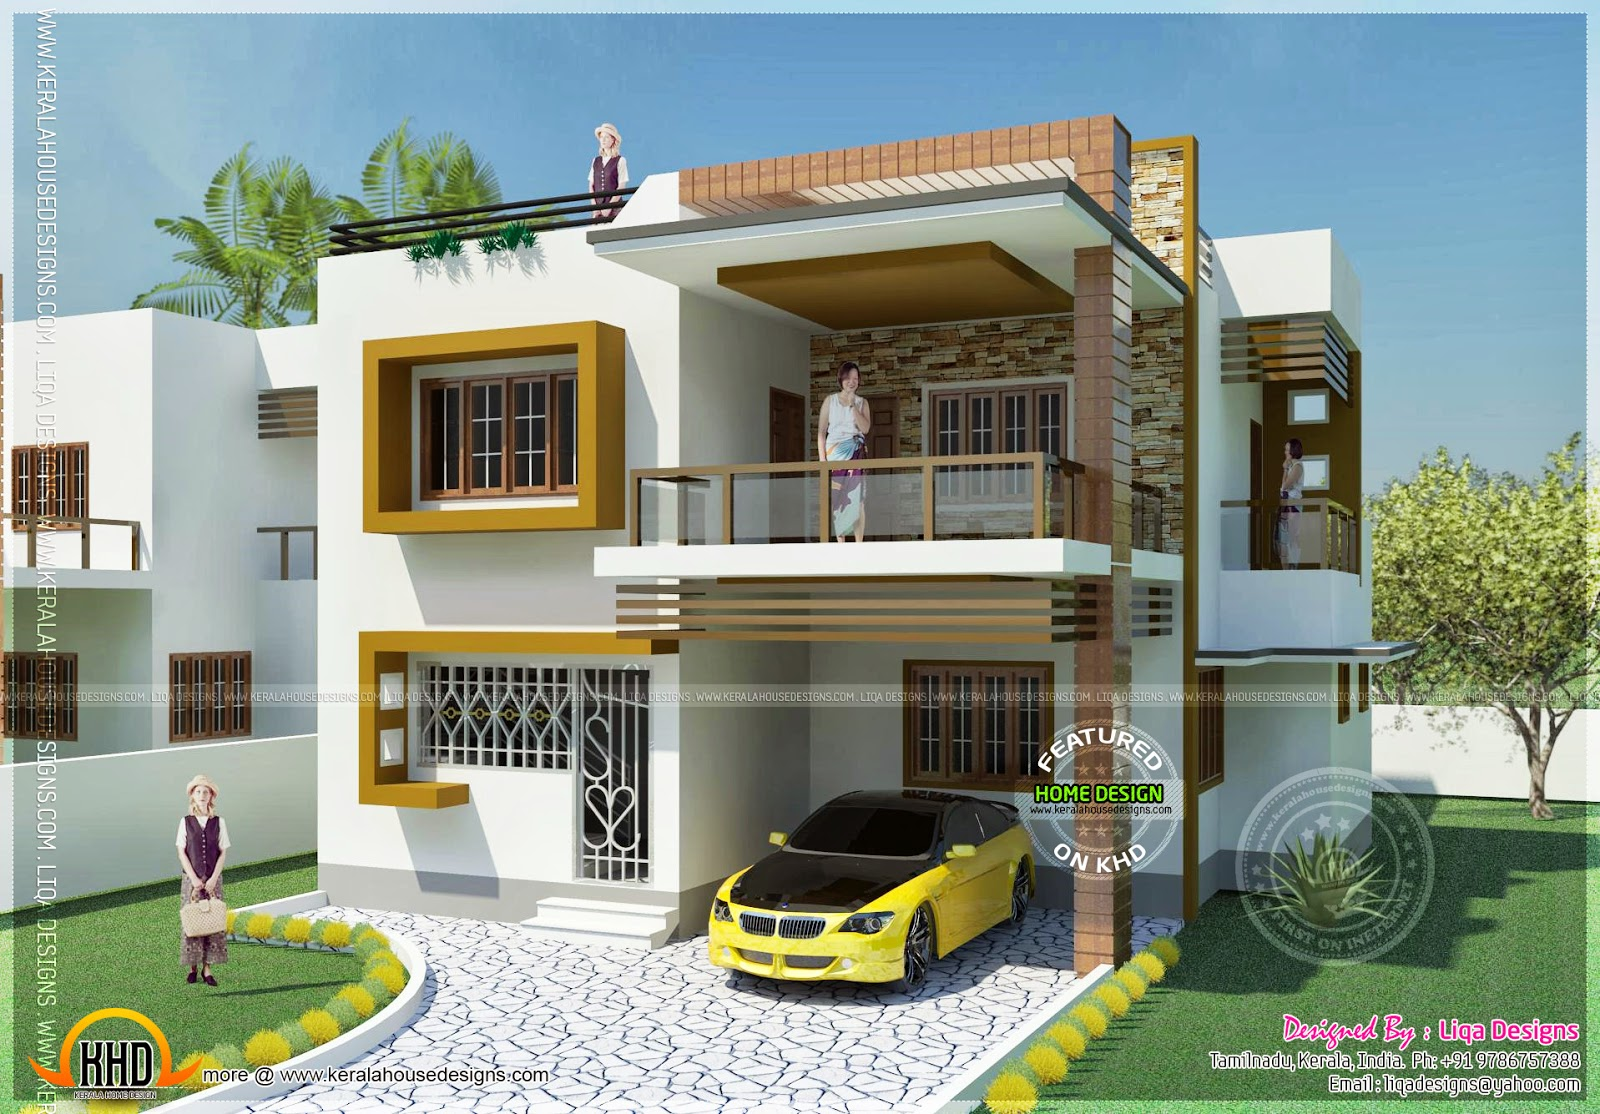 Double storied tamilnadu house design kerala home design for Tamilnadu house designs photos